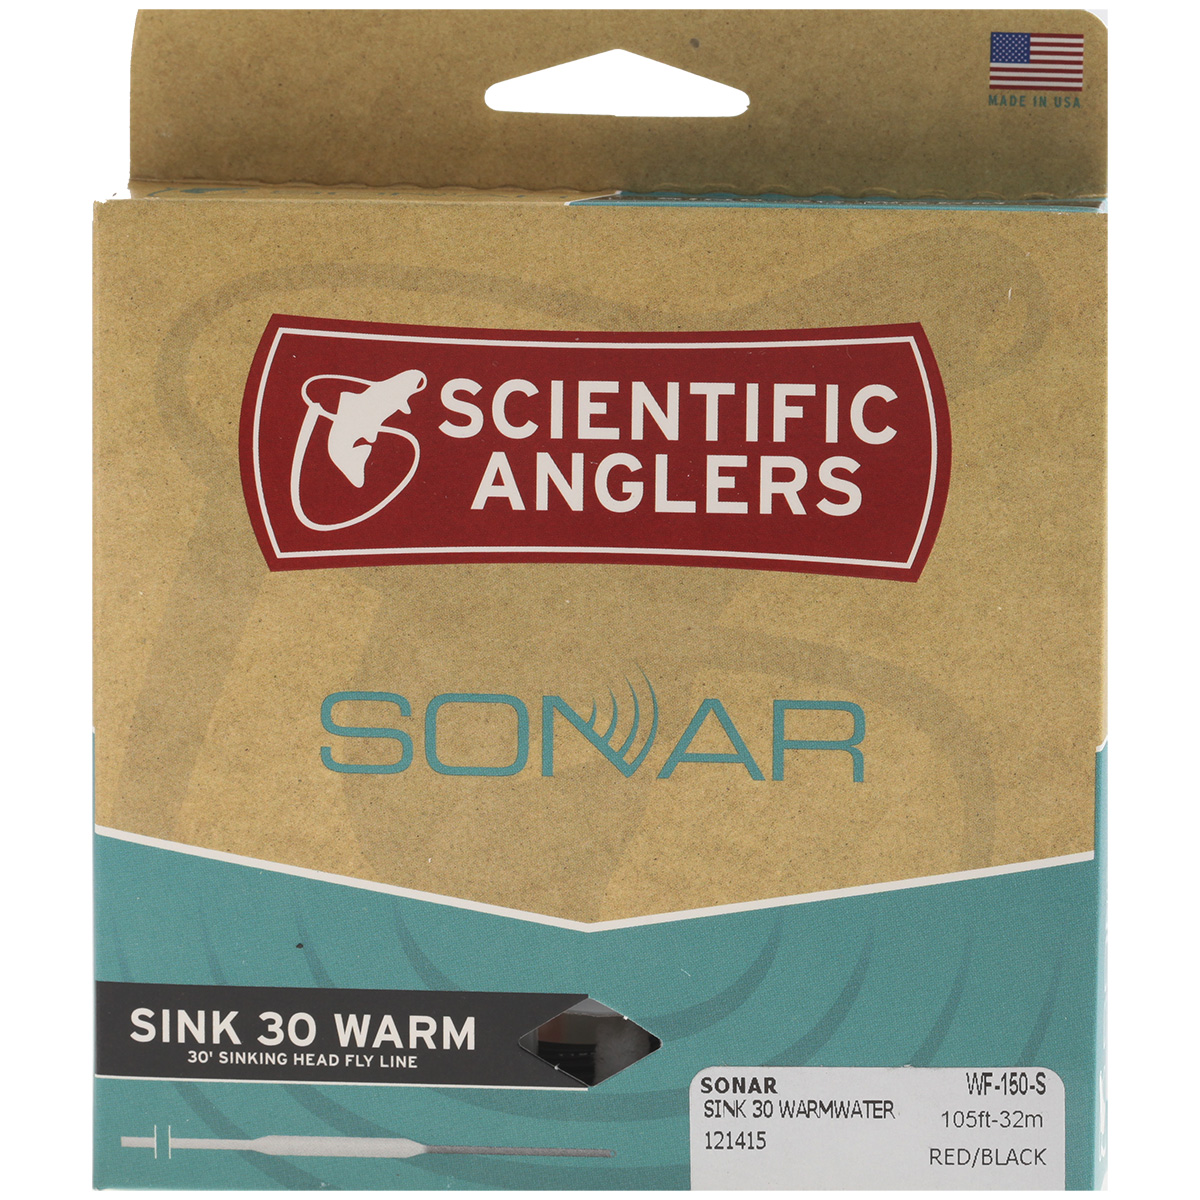 Scientific Anglers Sonar 30